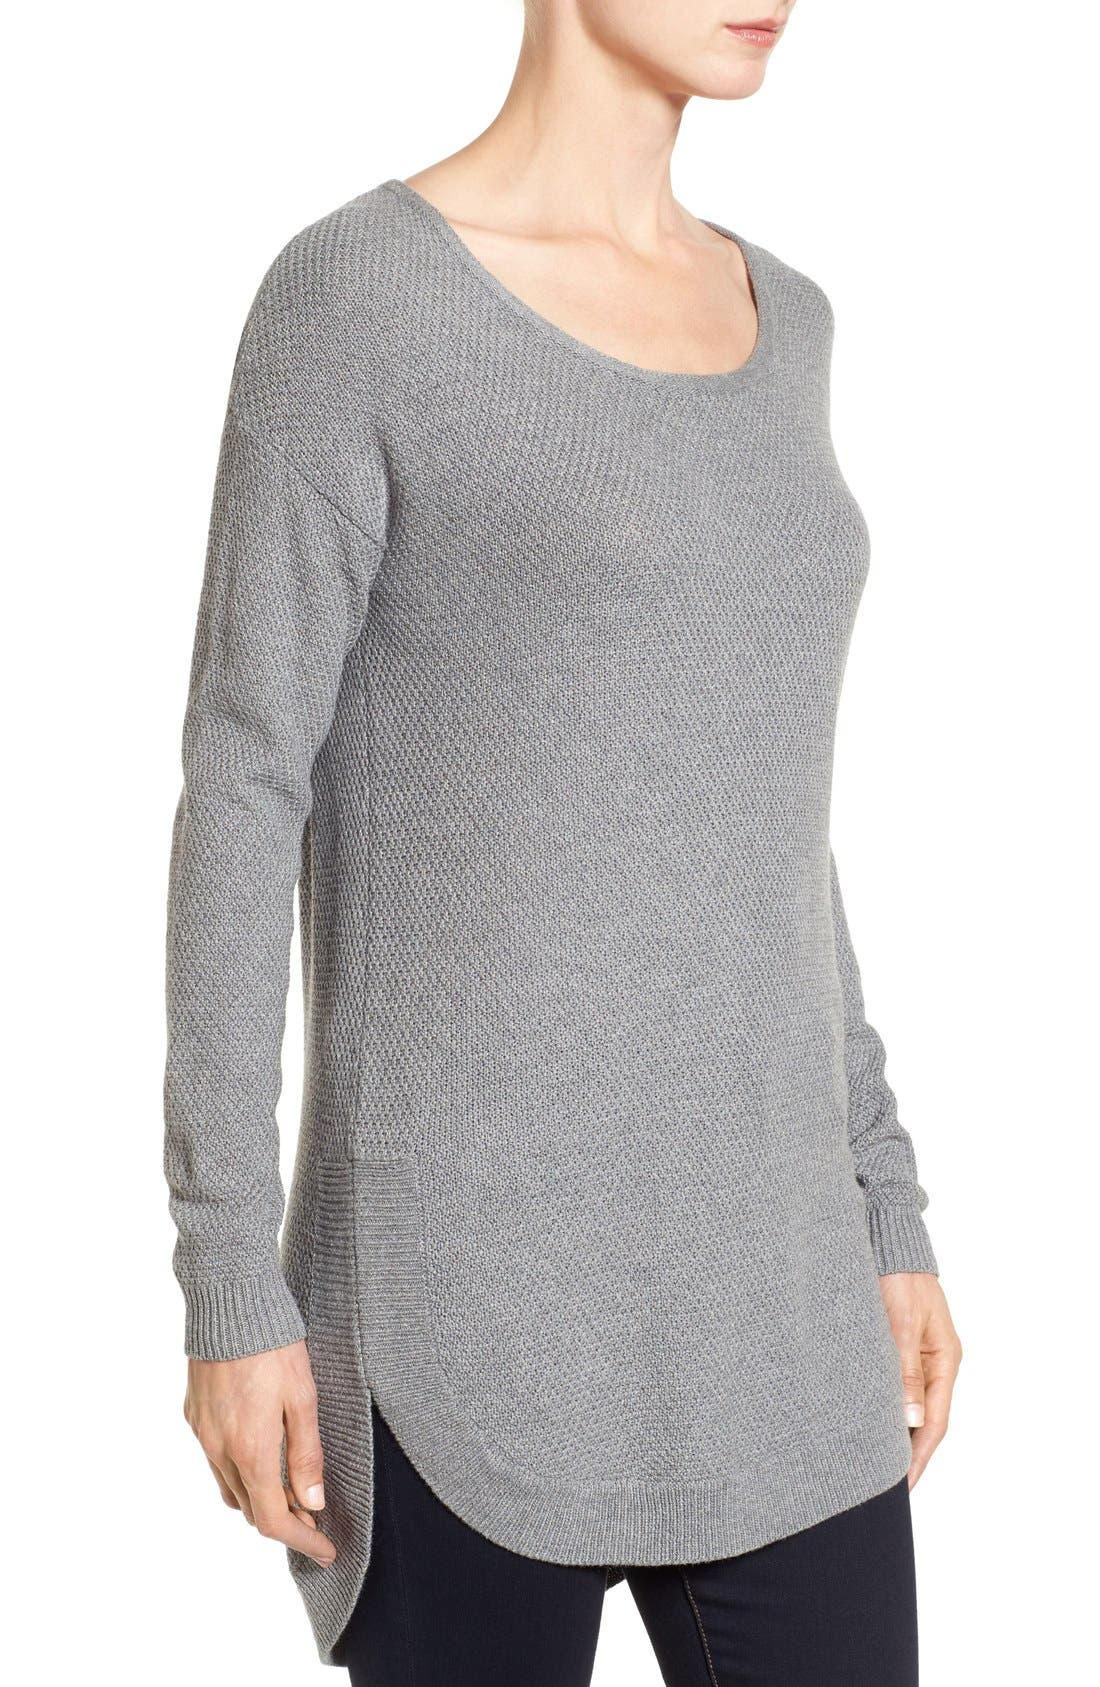 Texture Knit Tunic,                             Alternate thumbnail 3, color,                             Grey Texture Pattern